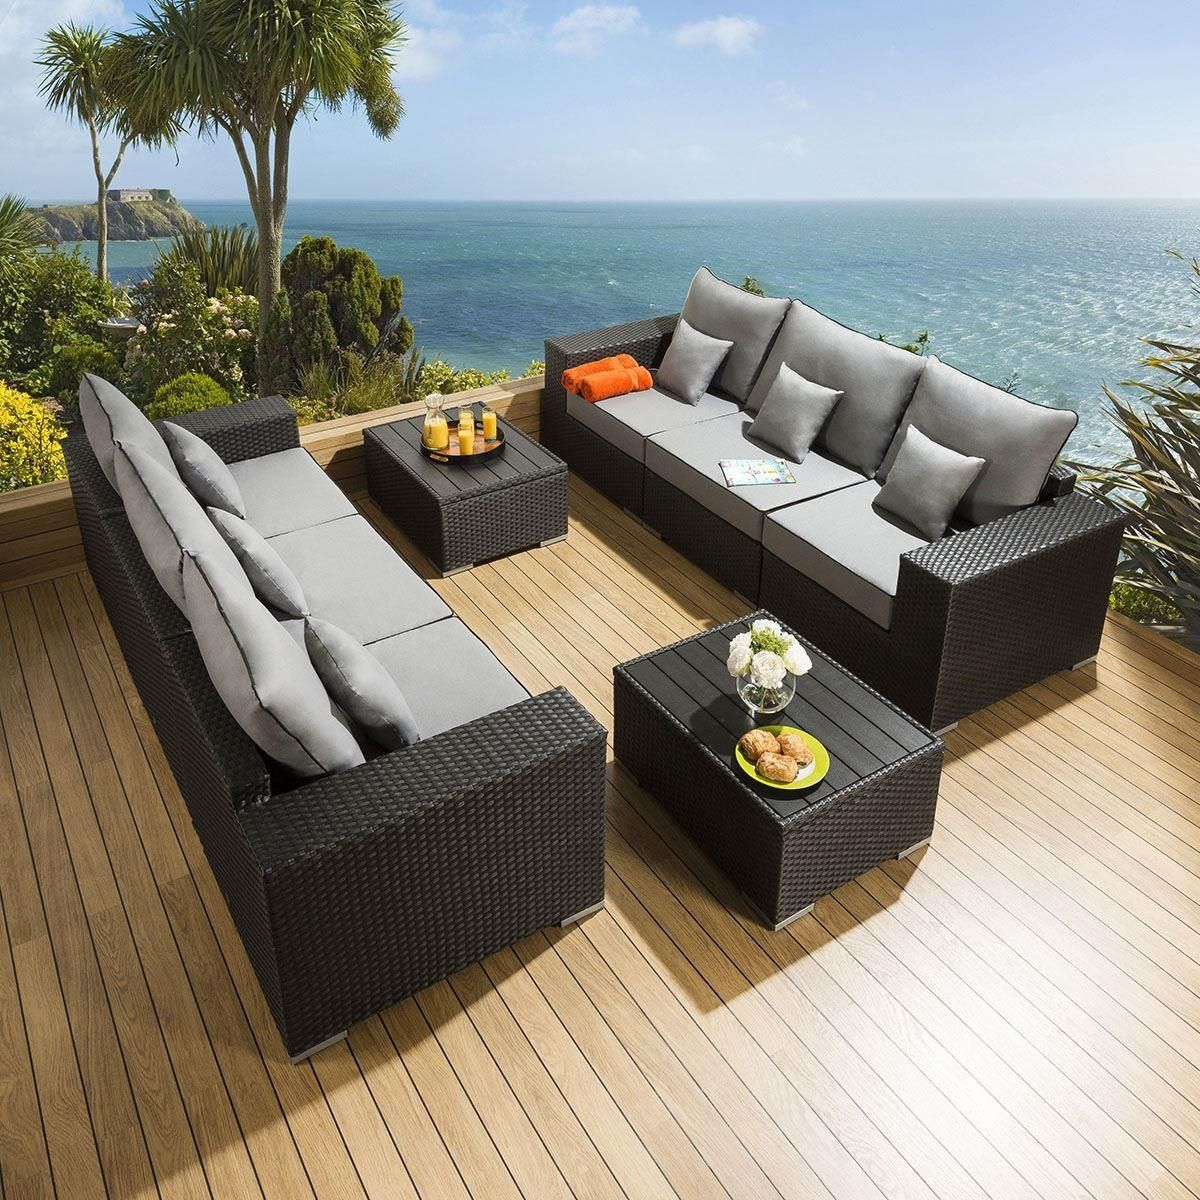 Lovely Garden 10 x 10 Seater Sofa Set Black Rattan / Grey Cushion S10